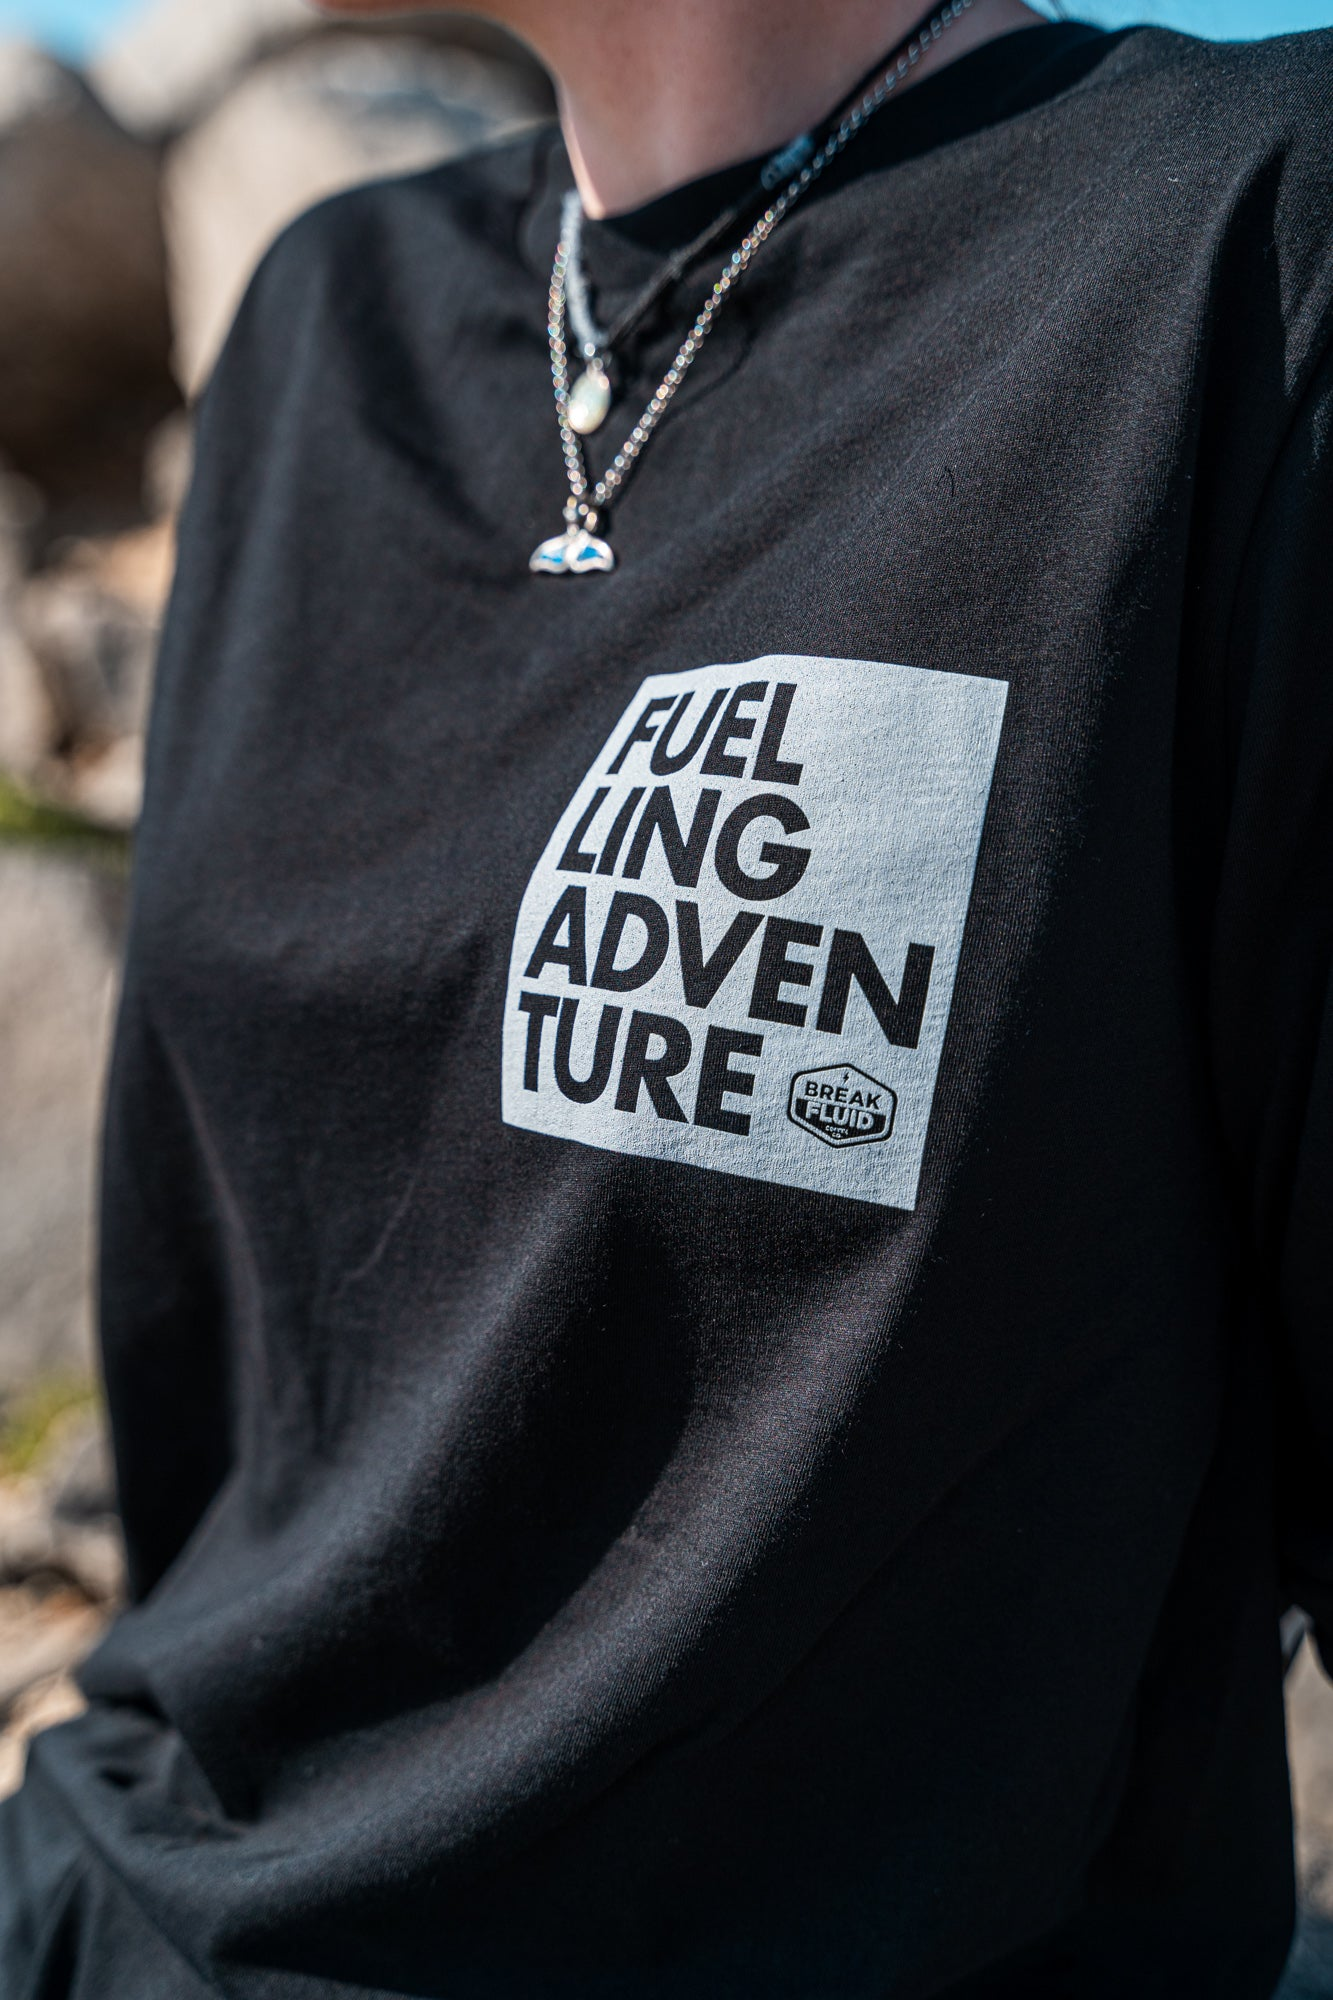 Fuelling Adventure Long Sleeve T-shirt